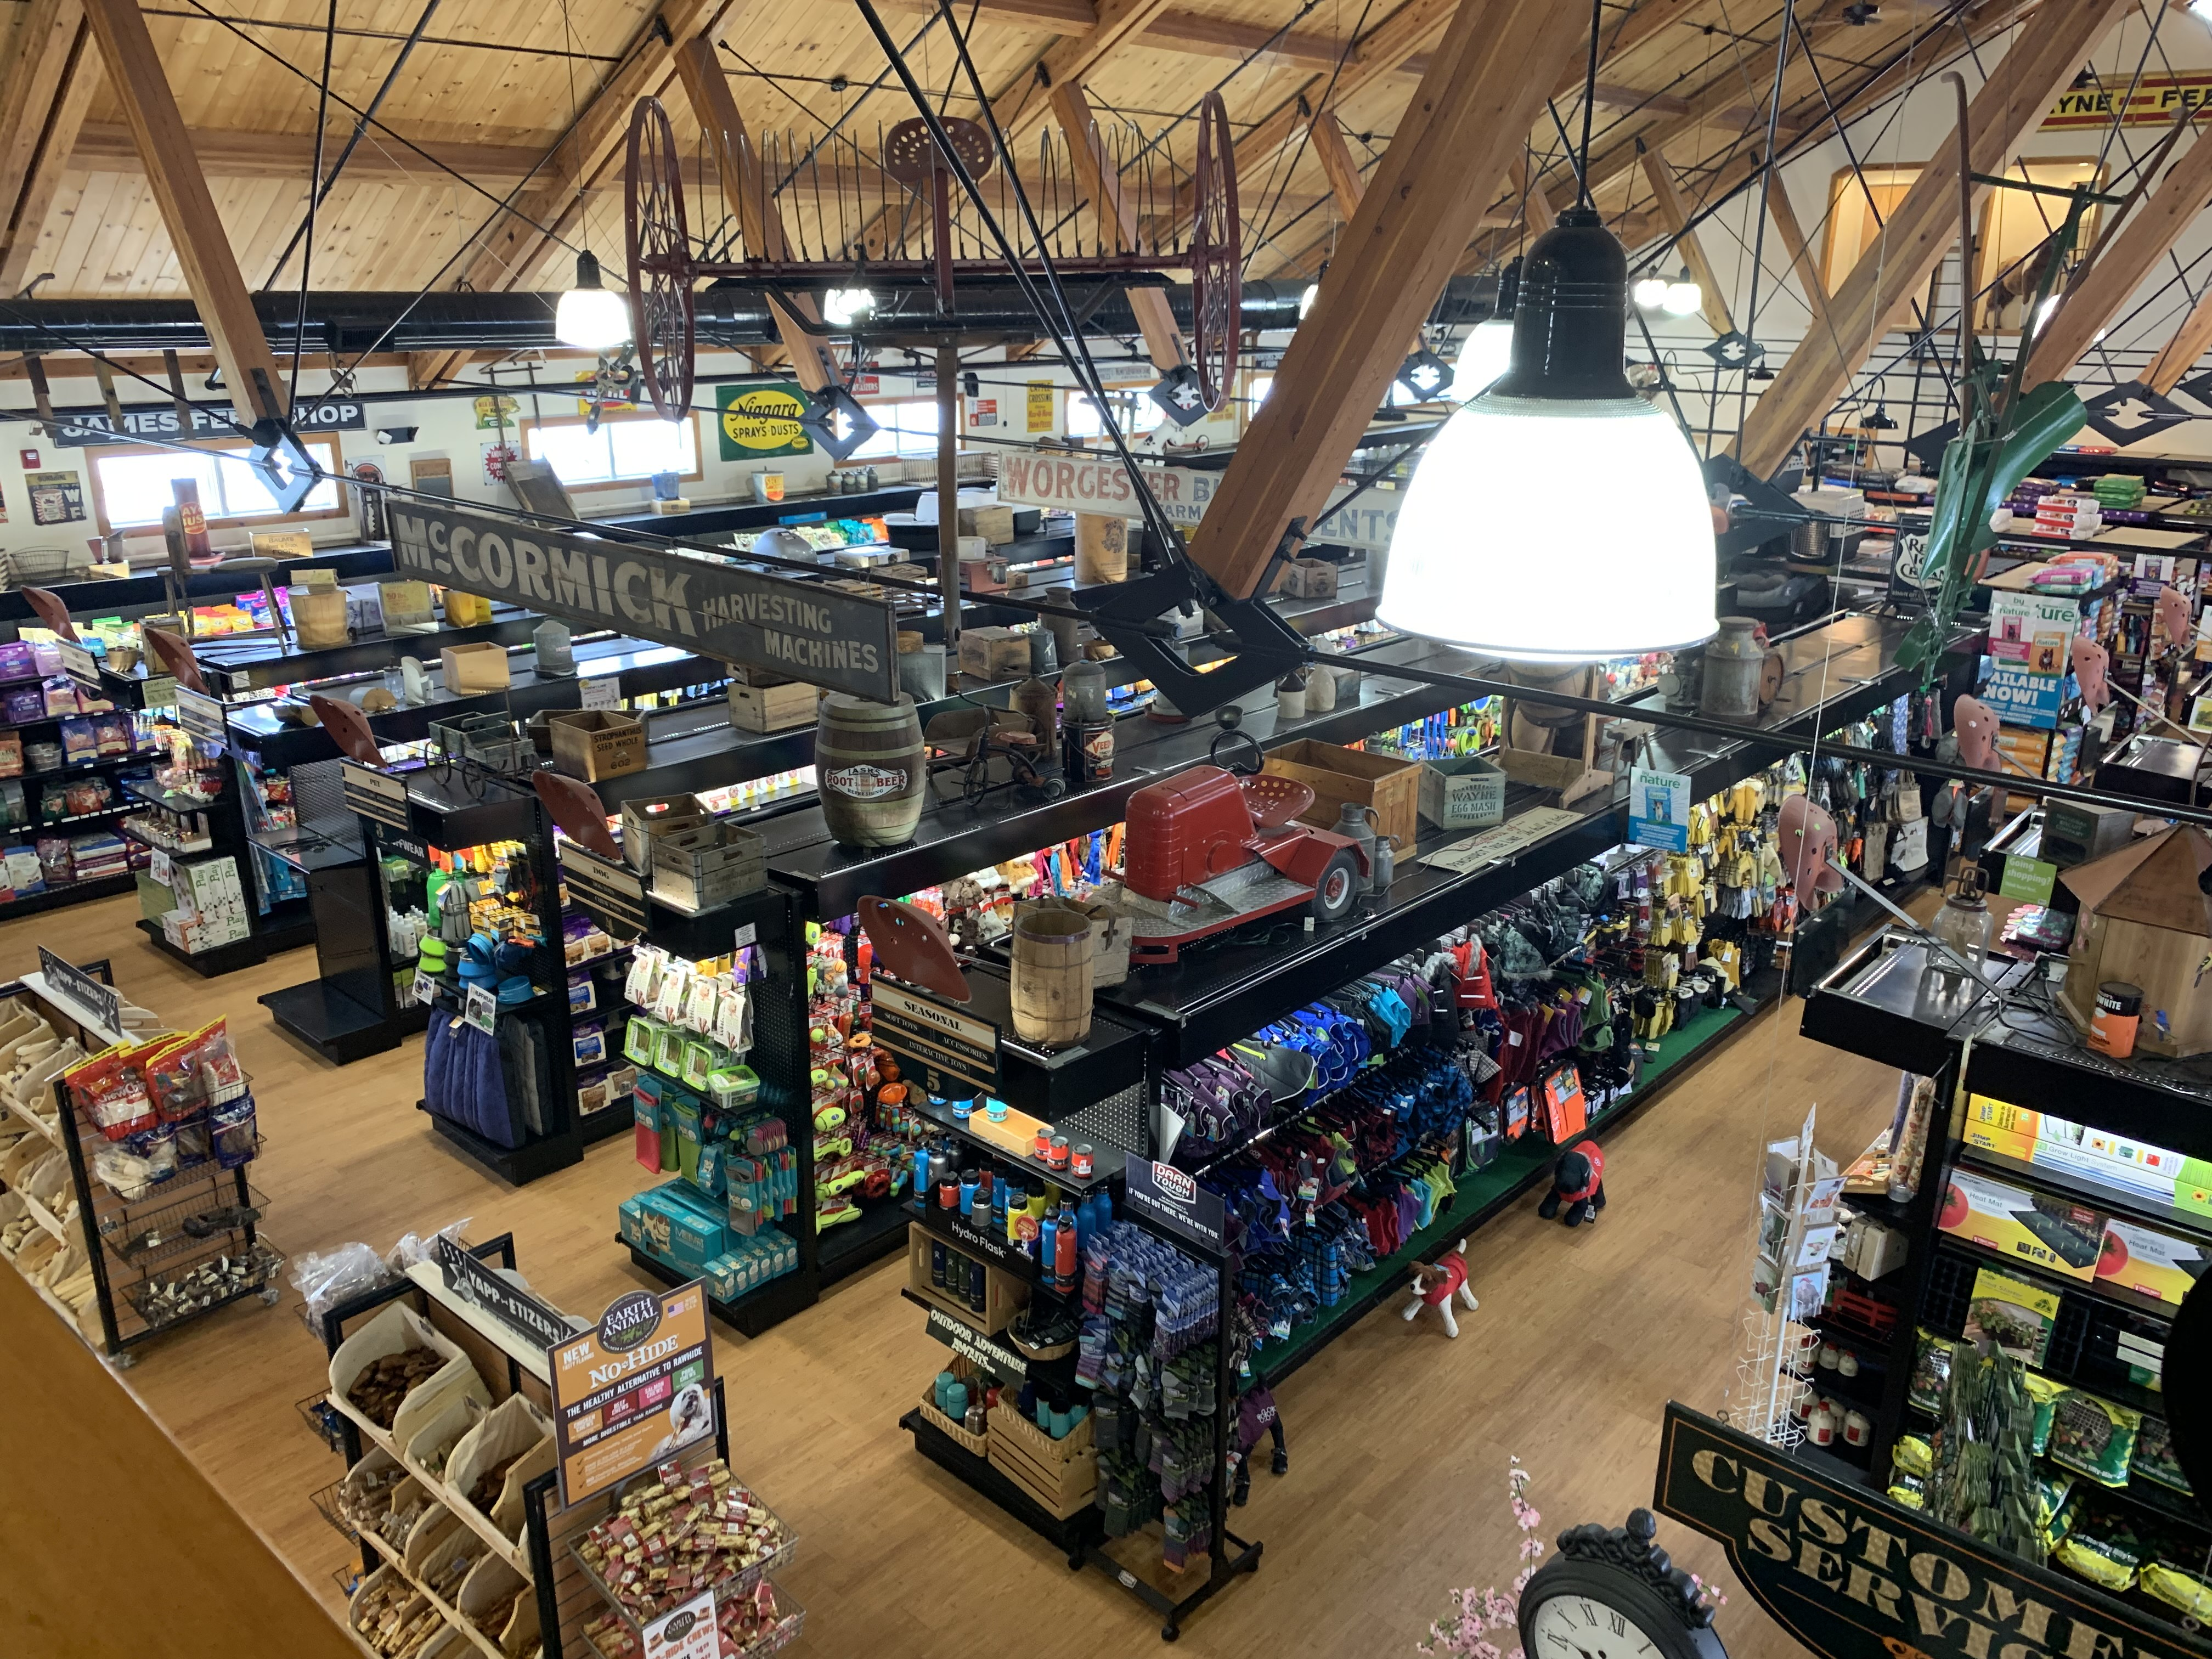 A view of the store from the mezzanine.